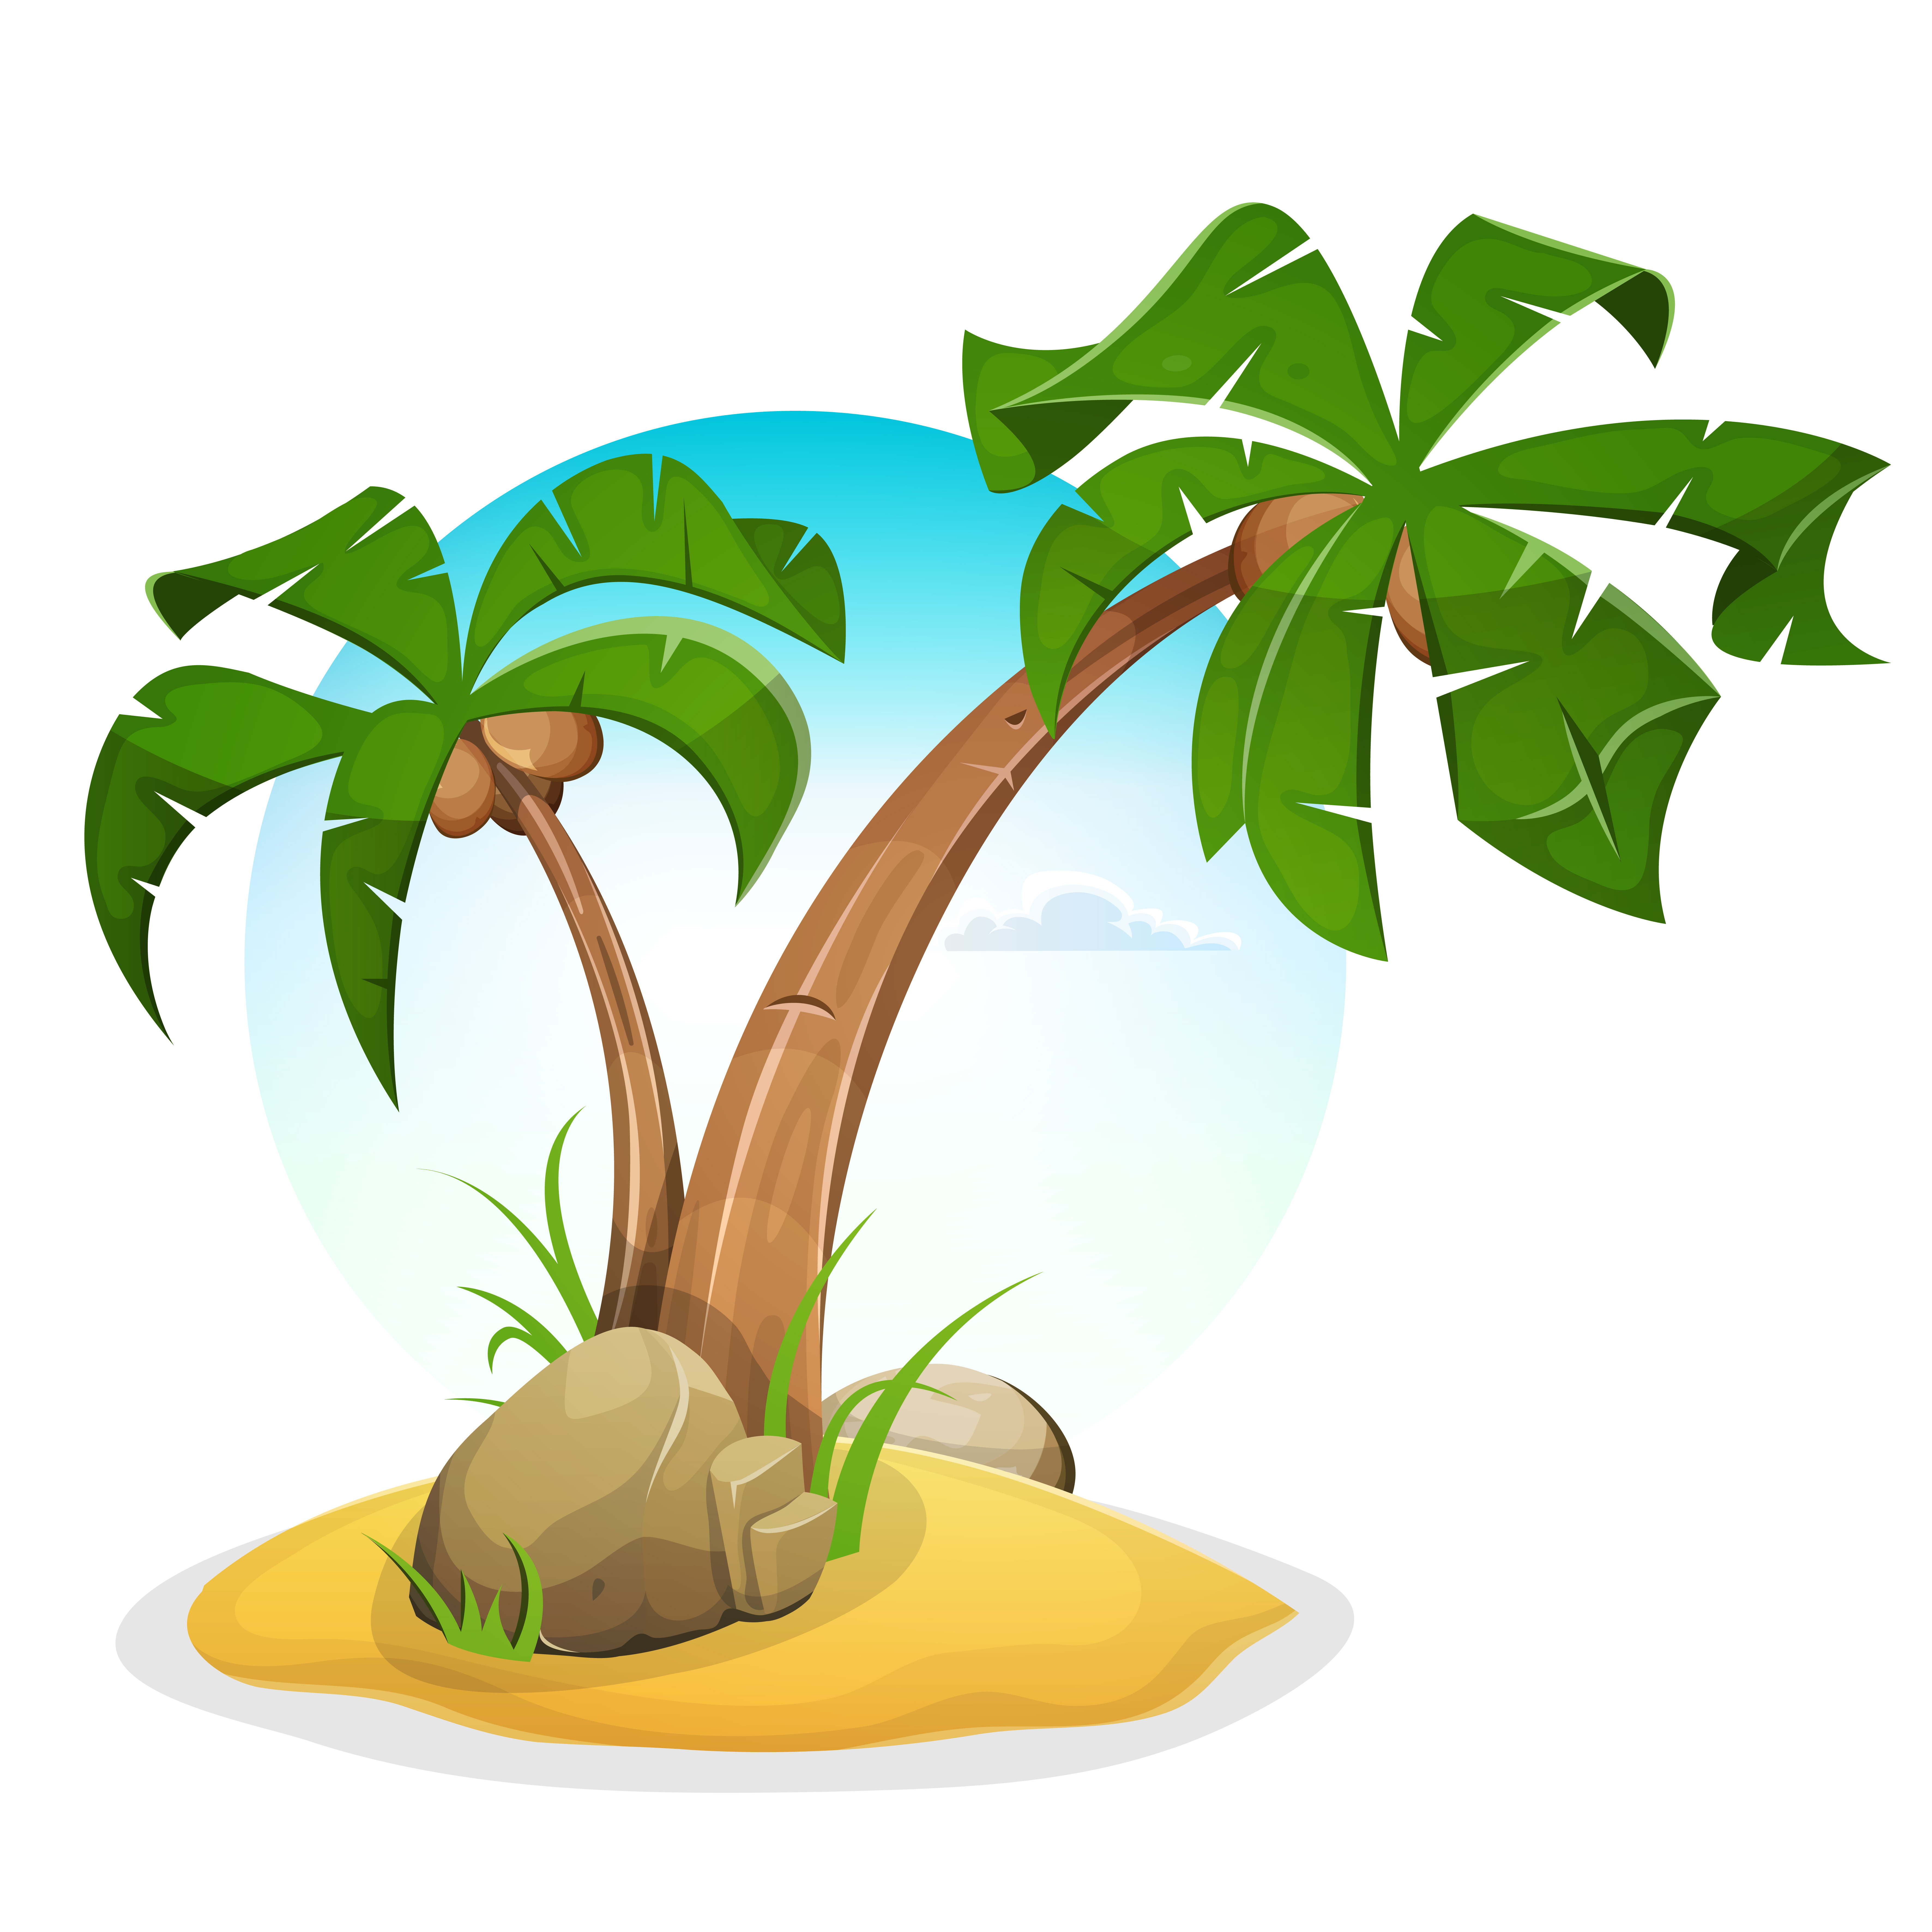 Tropical Island With Palm Trees - Download Free Vectors ...